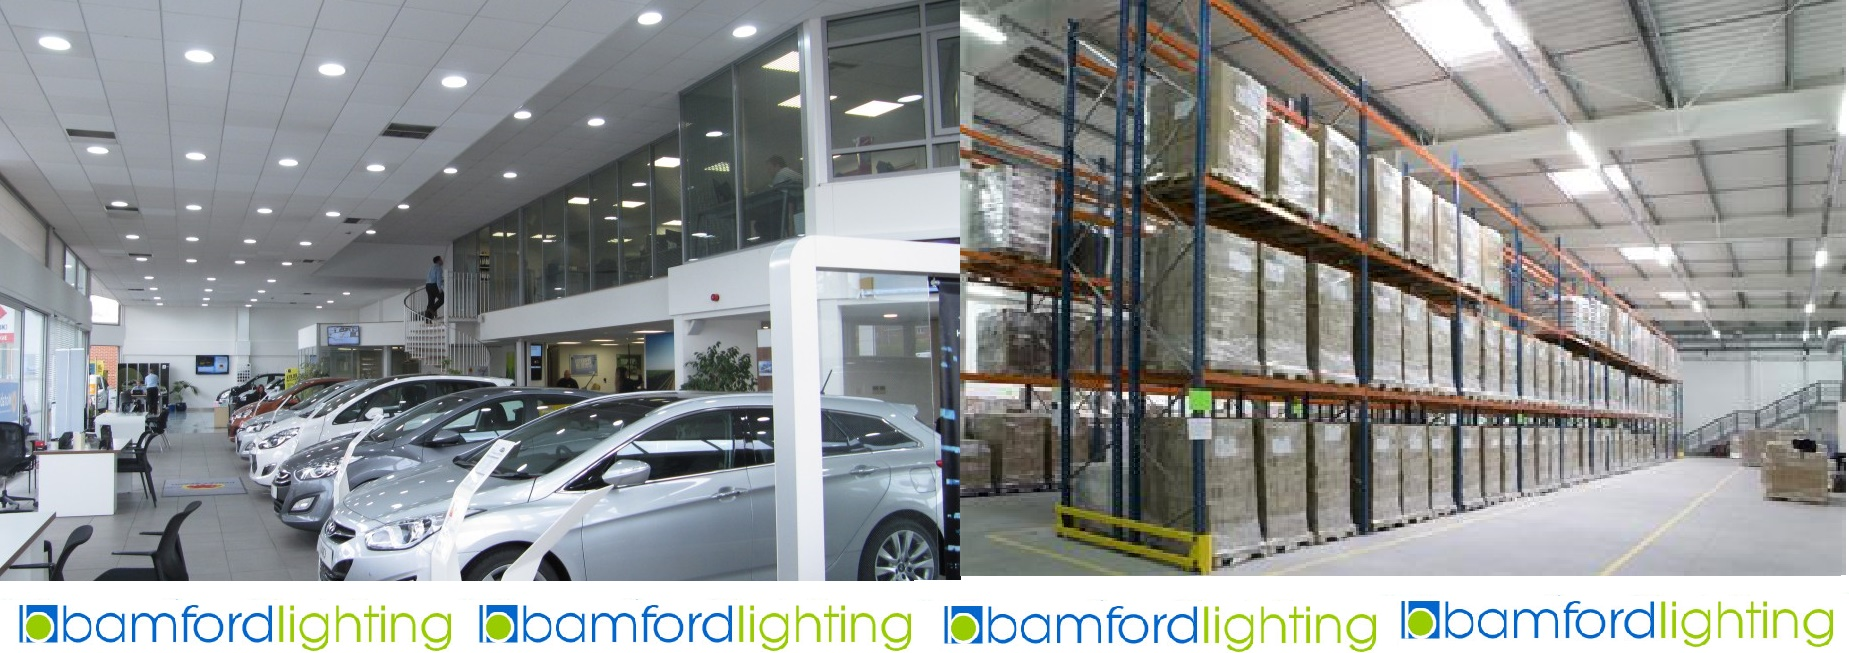 Commercial led lighting led light fittings systems aloadofball Choice Image